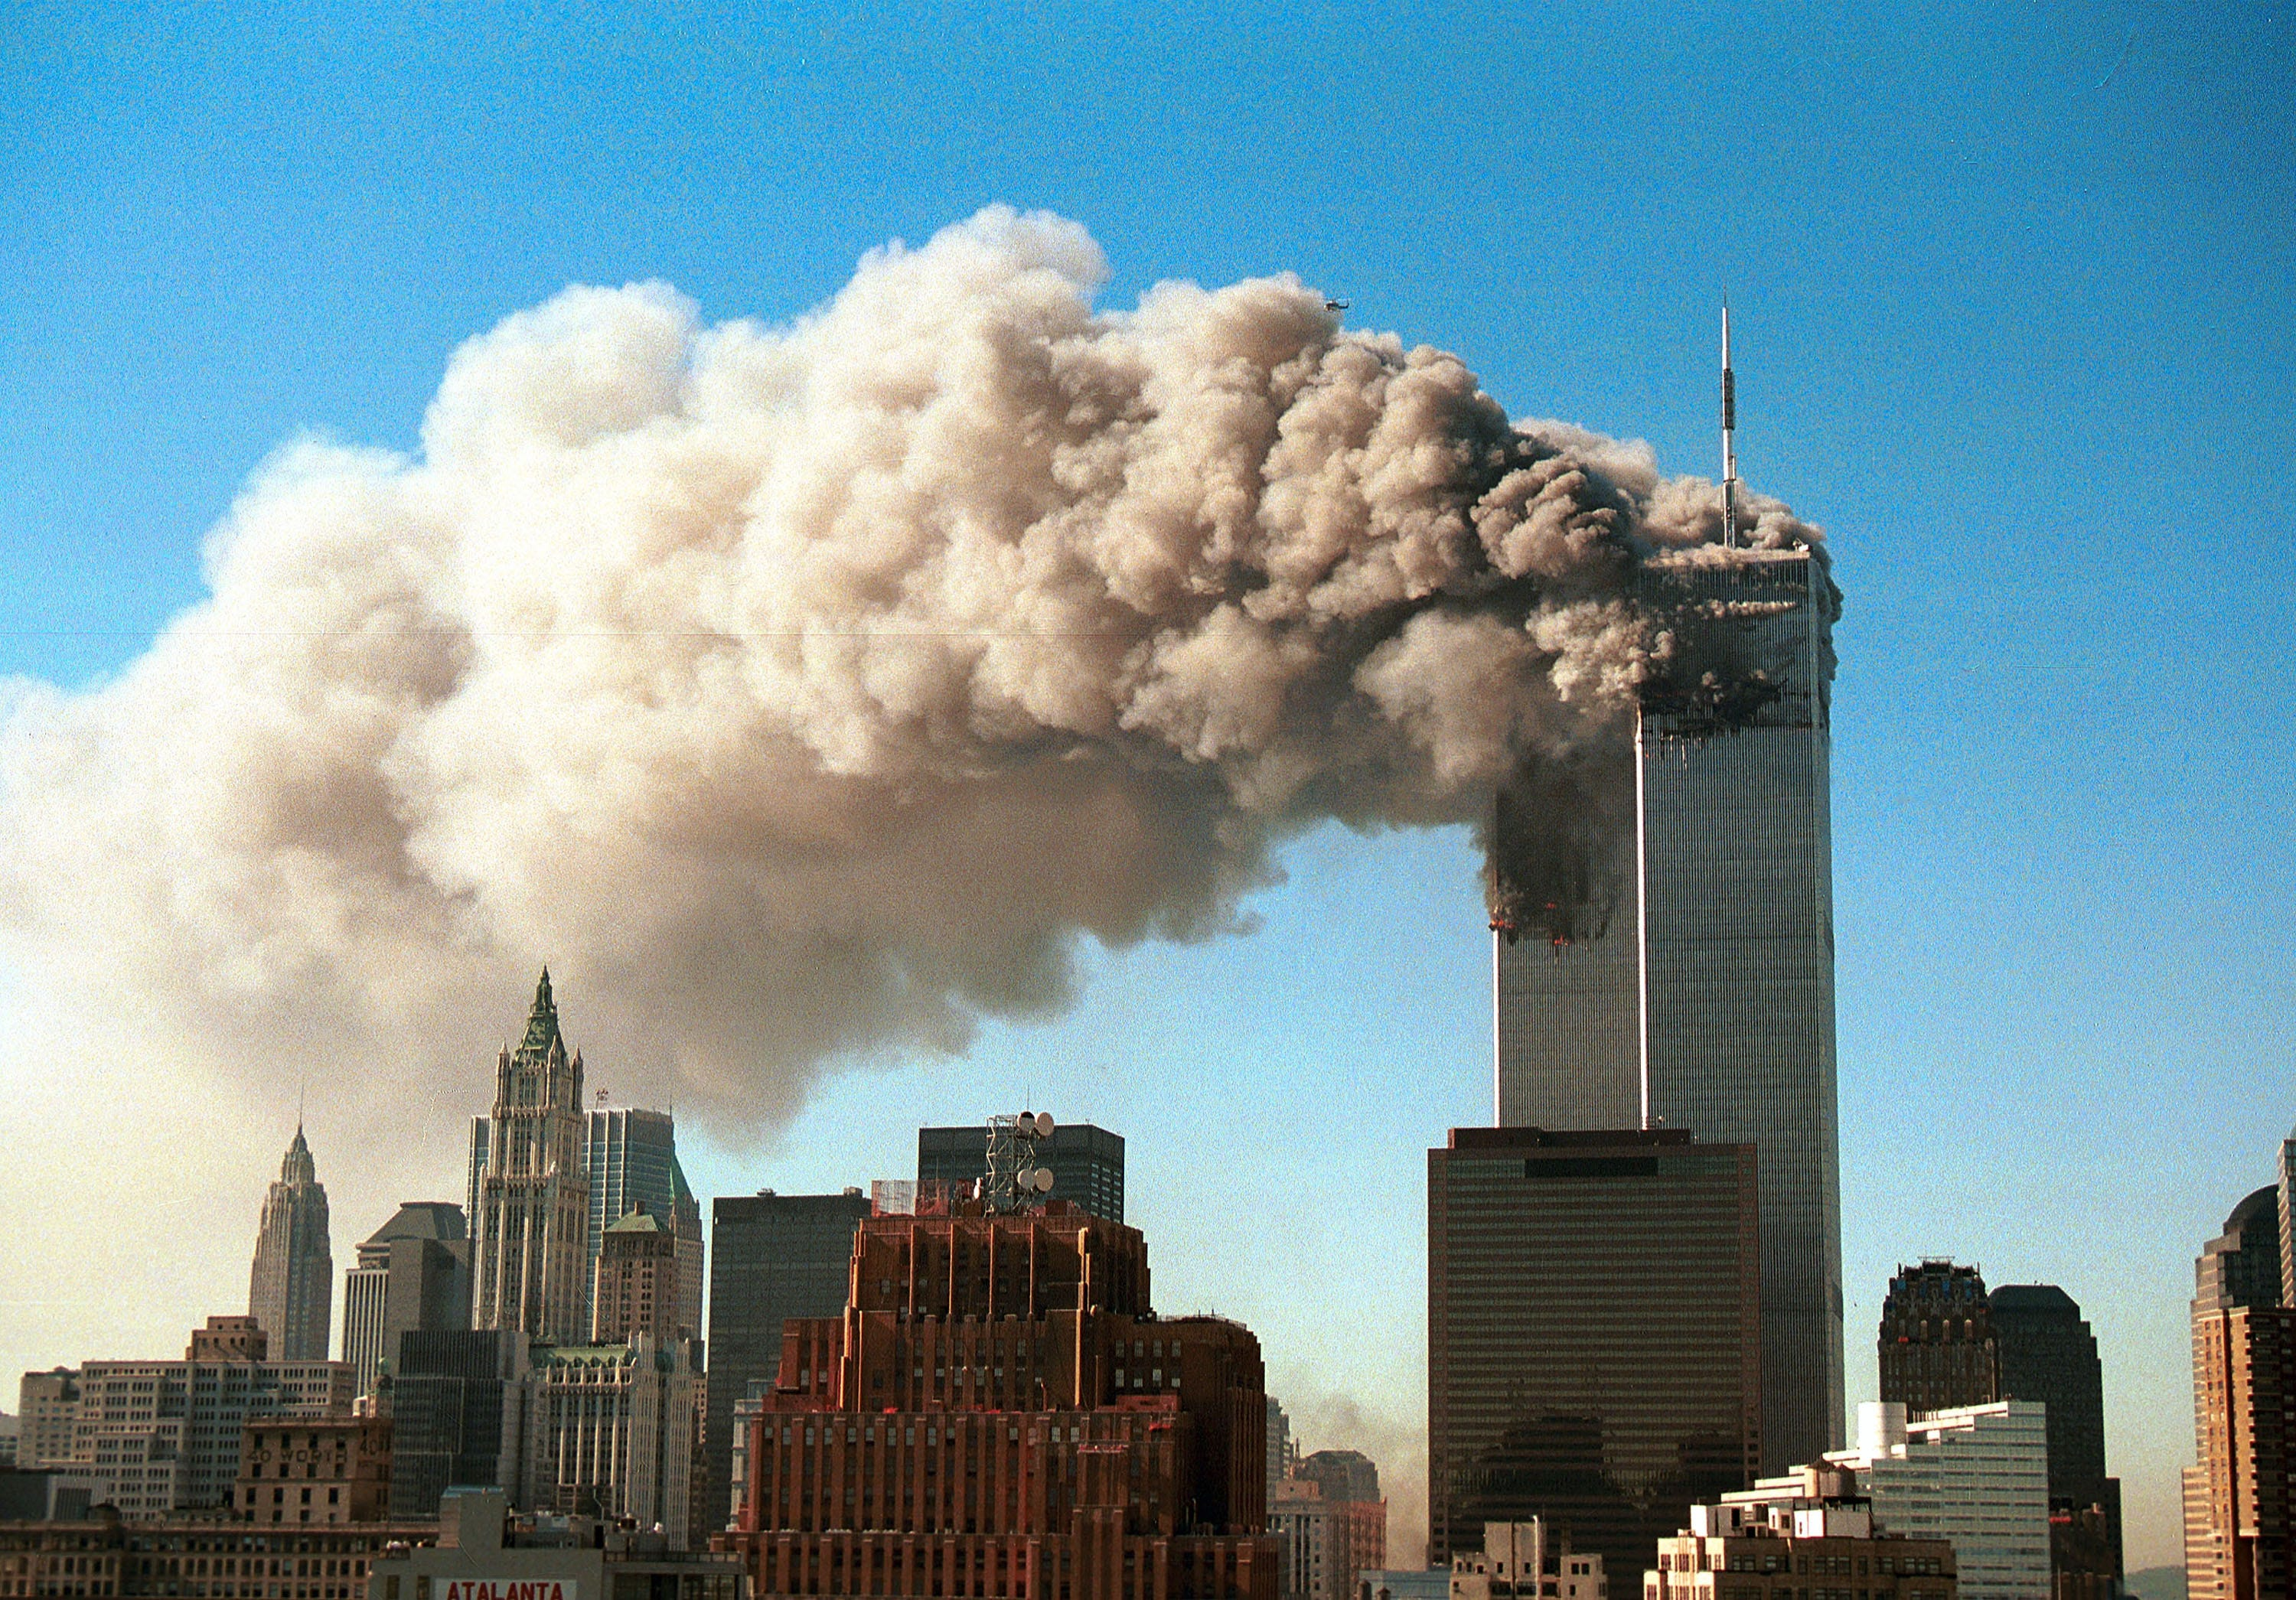 Smoke pours from the twin towers of the World Trade Center.